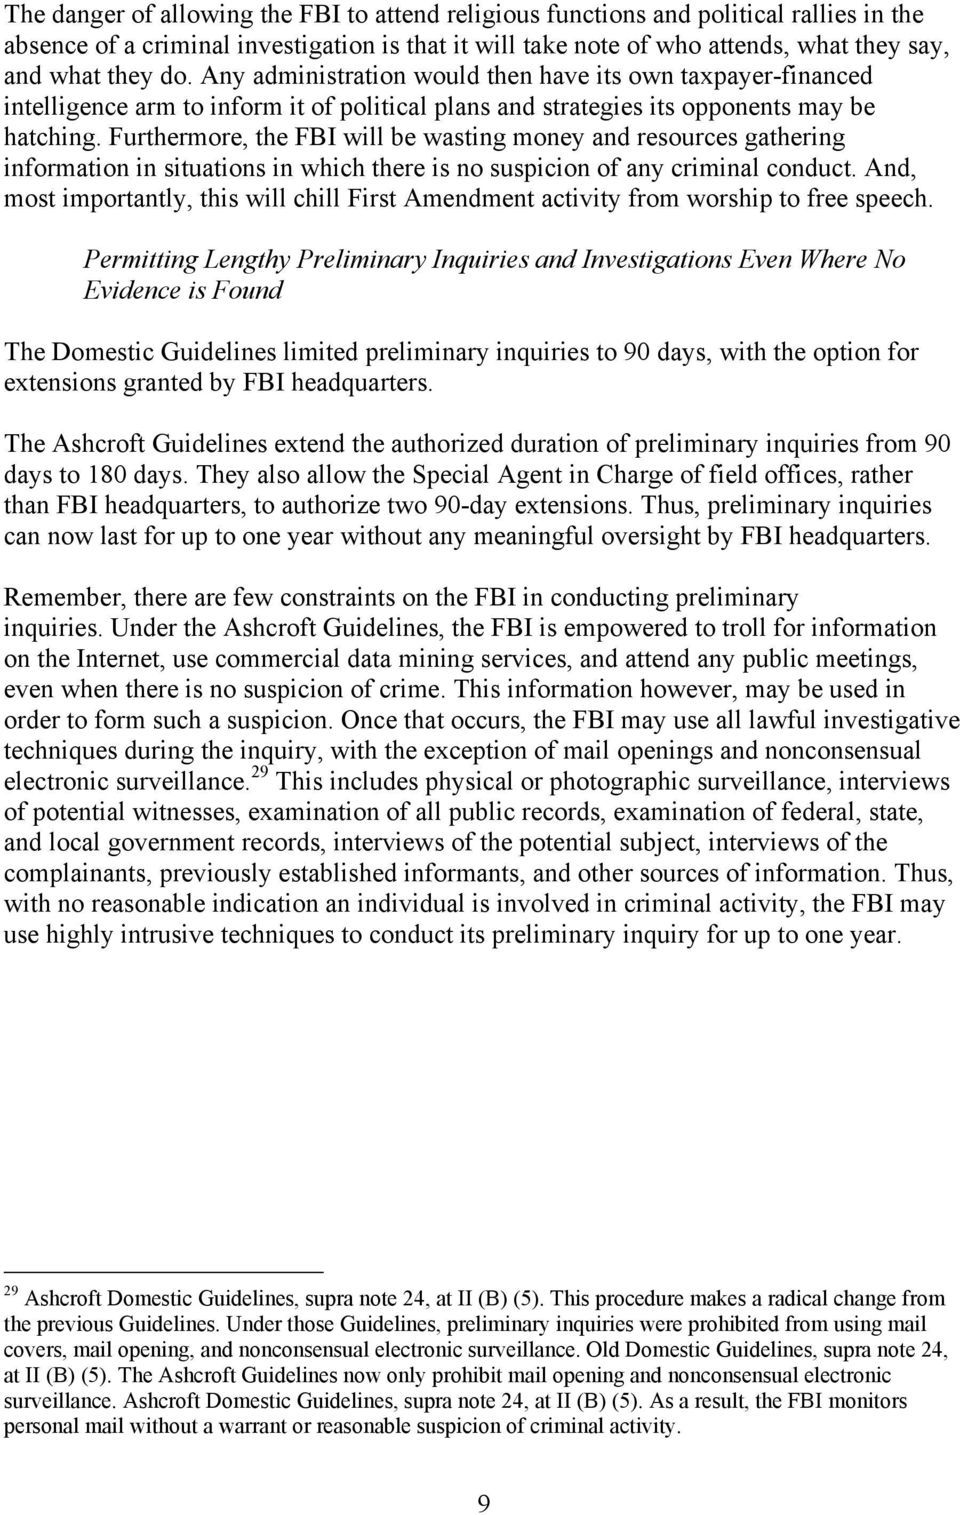 Furthermore, the FBI will be wasting money and resources gathering information in situations in which there is no suspicion of any criminal conduct.